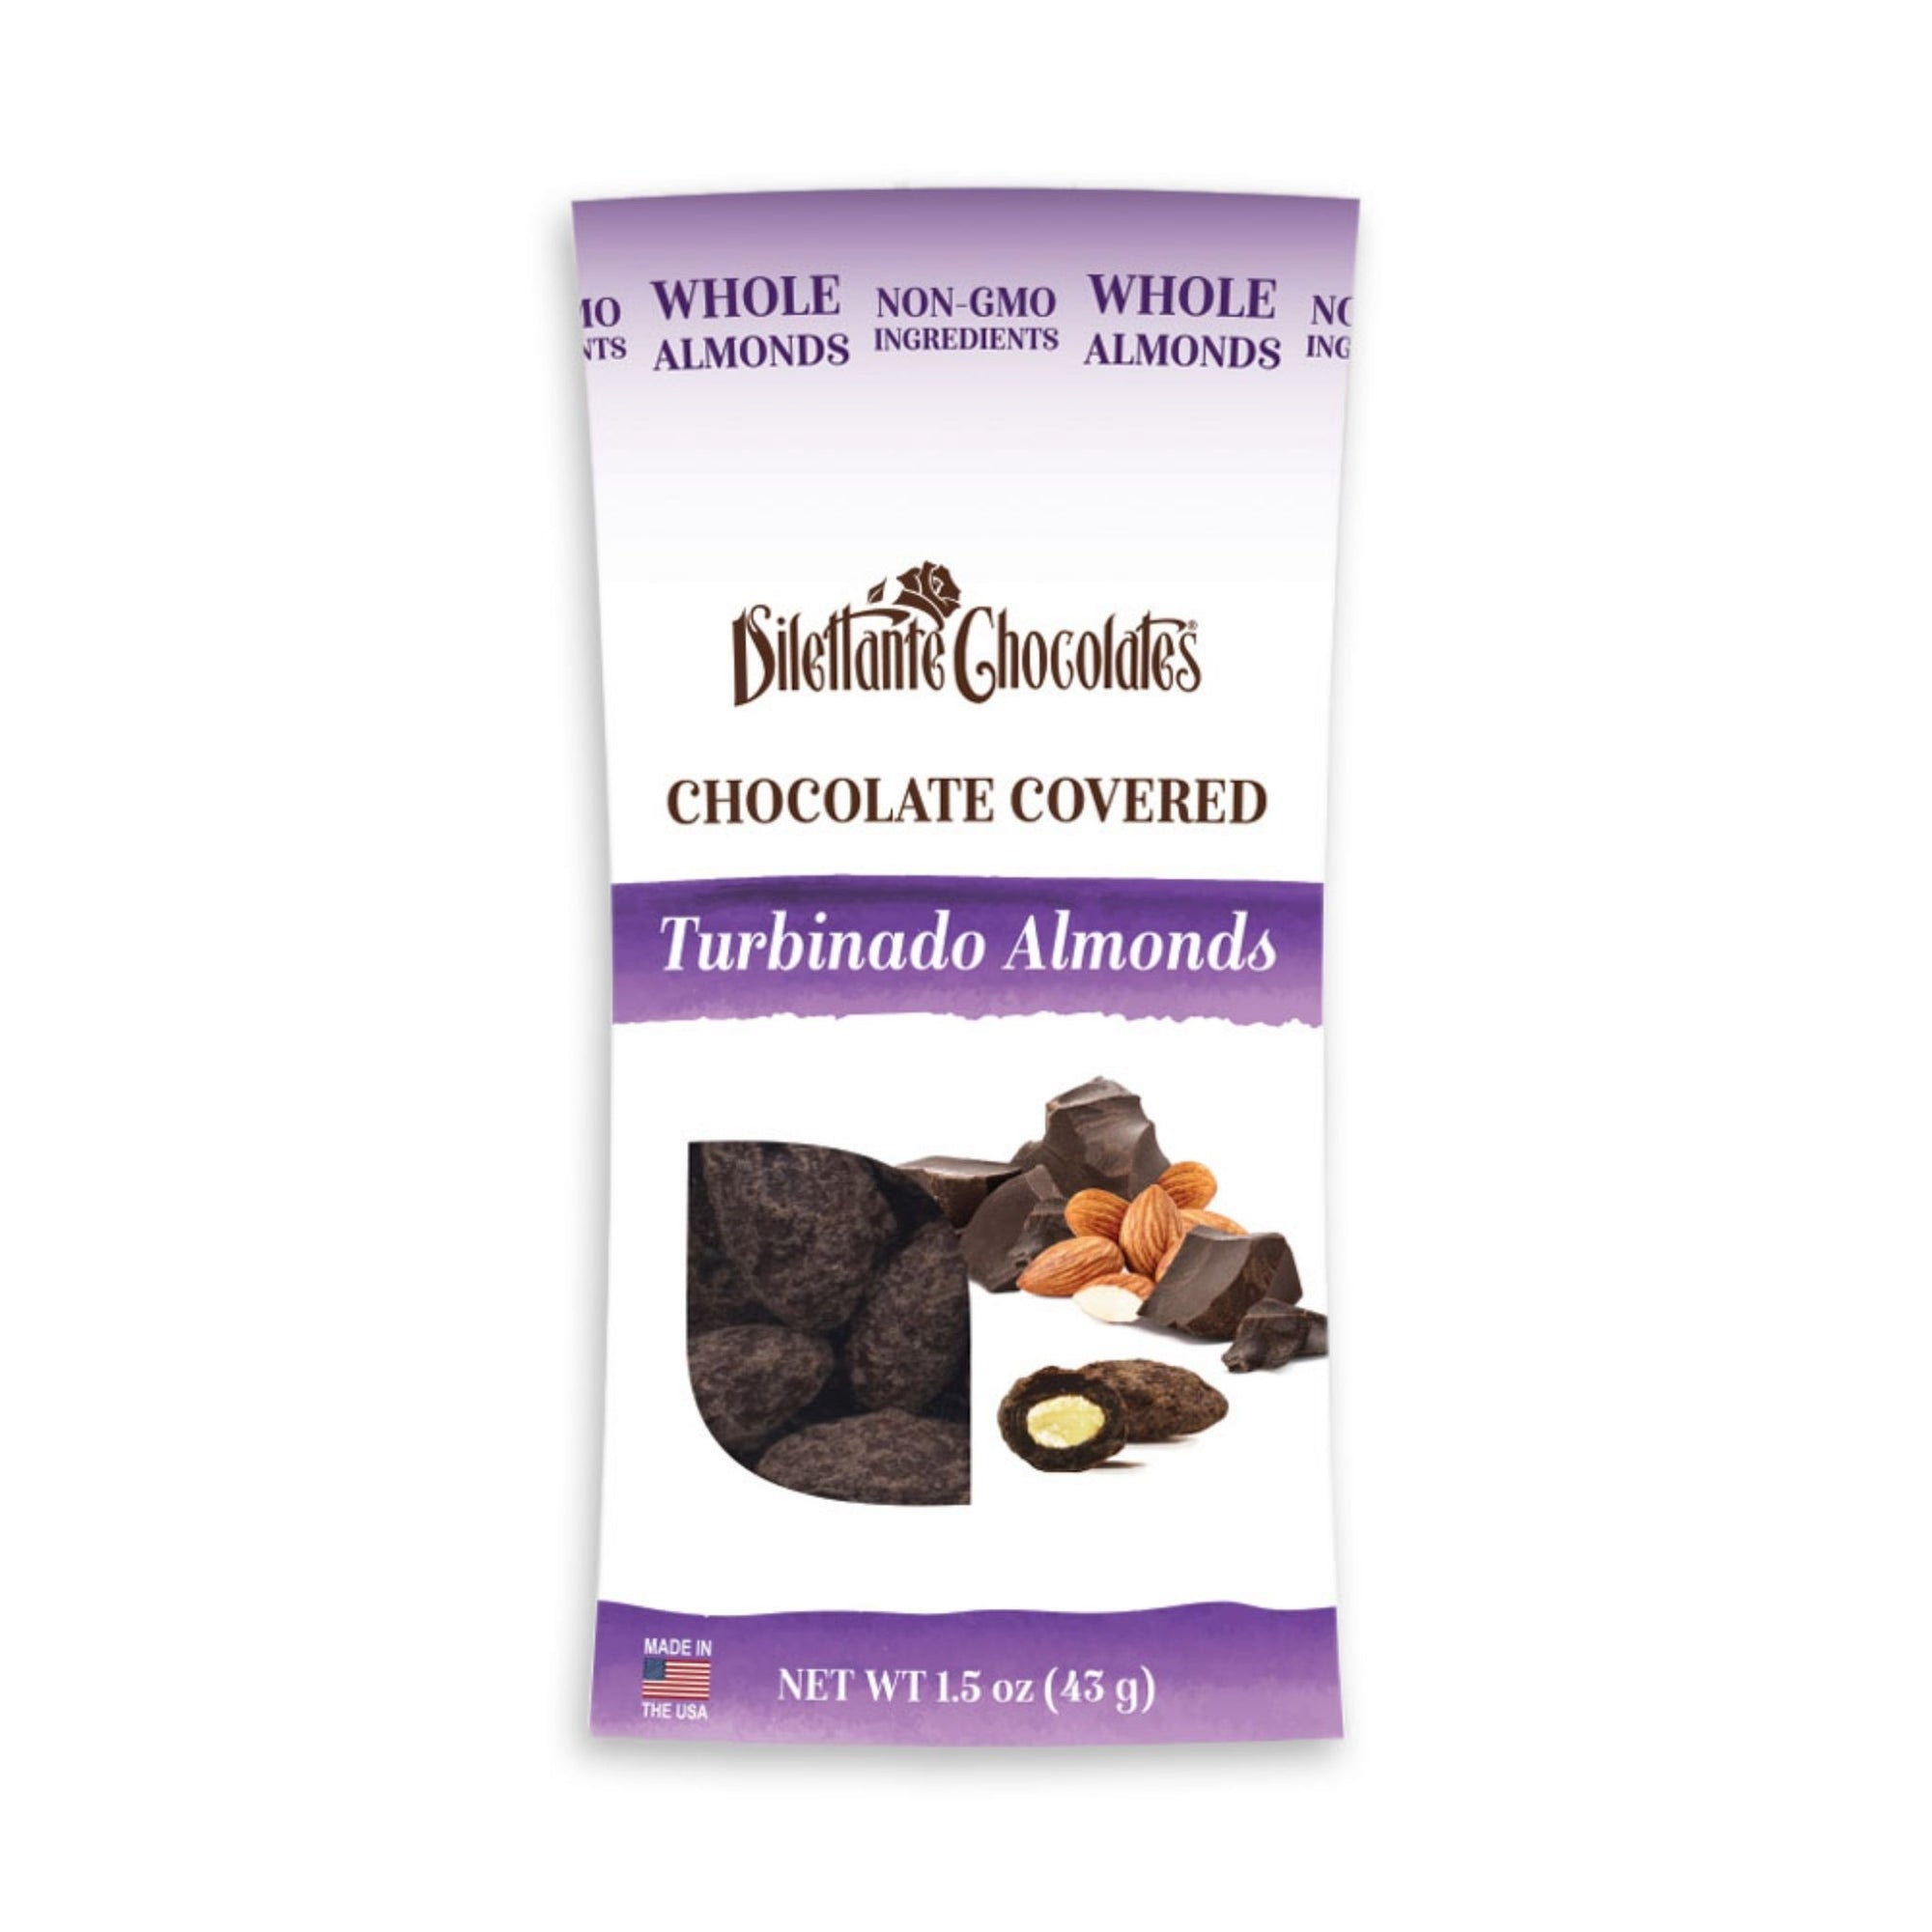 Dilettante Chocolates Chocolate-Covered Turbinado Almonds Made with Whole Almonds and Non-GMO Ingredients